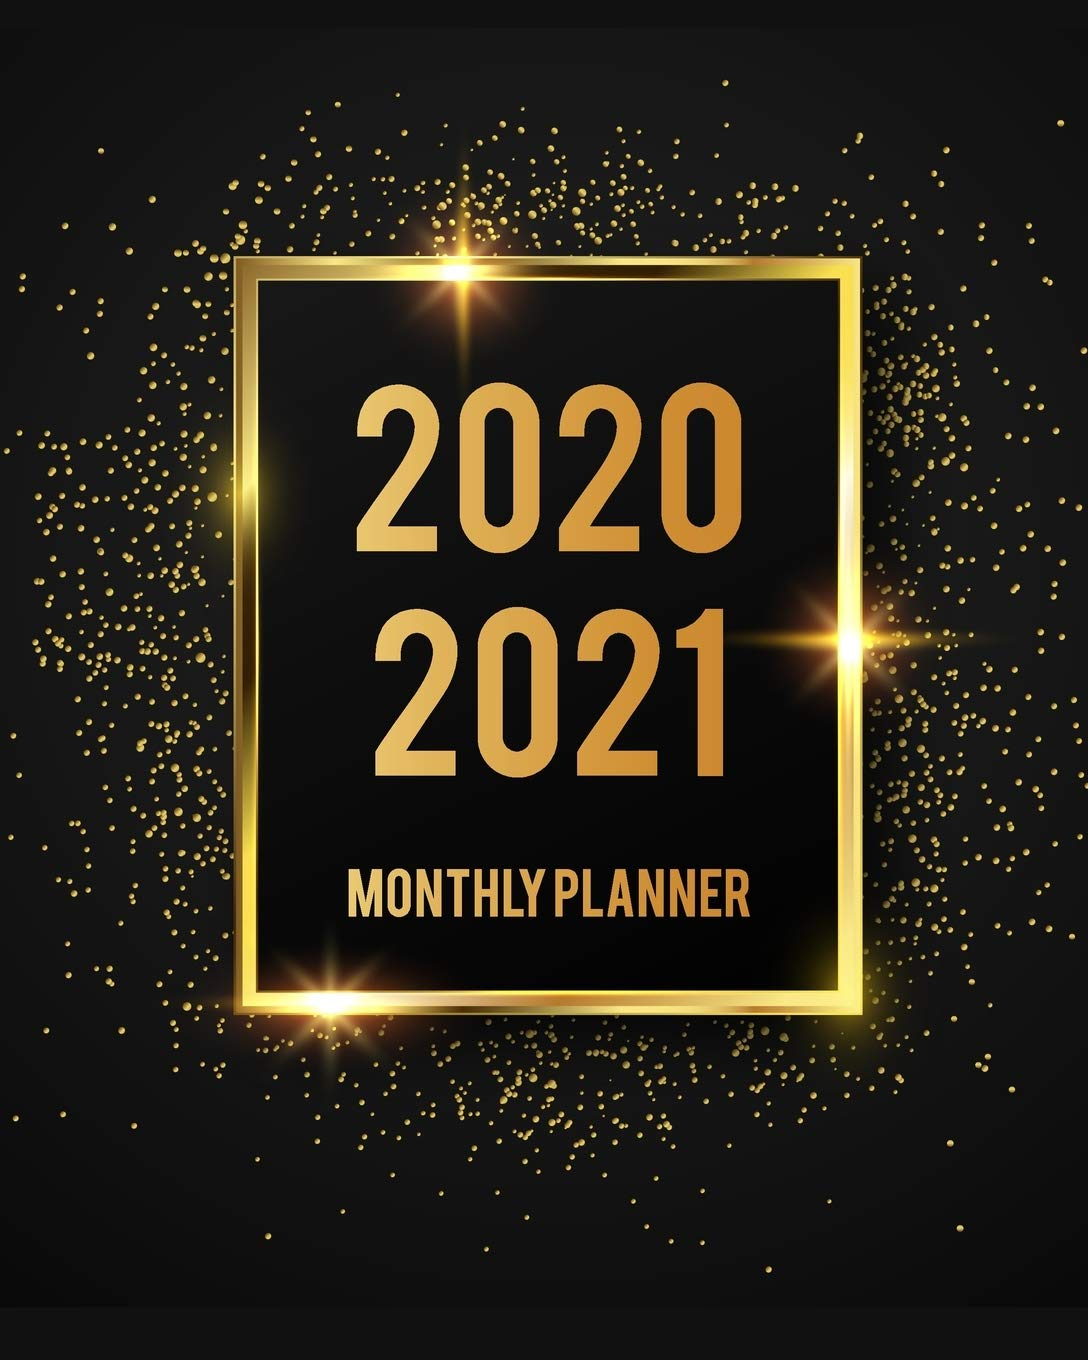 Amazon.com: 2020-2021 Monthly Planner: Black Cover 2 Year ...